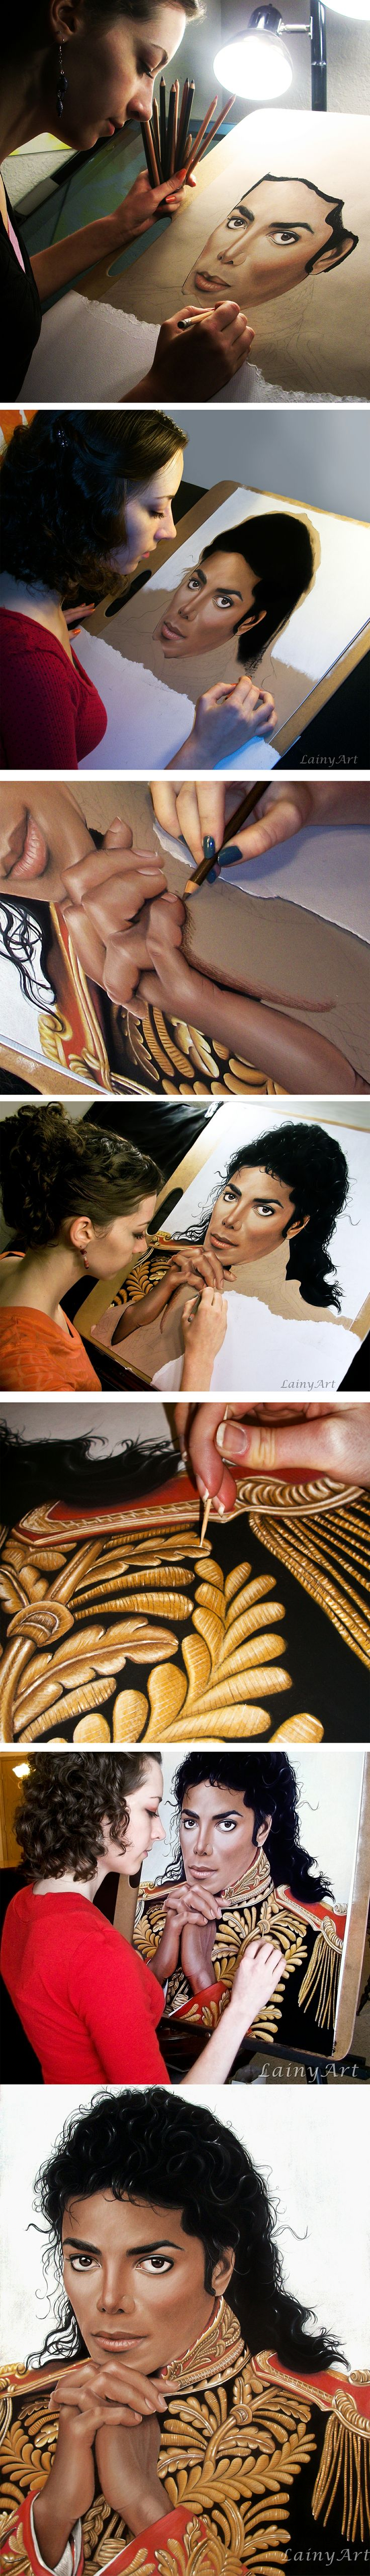 """pinner: """"The process of creating my biggest and most realistic portrait to date.   Michael Jackson drawn using pastel pencils and acrylic paint highlights applied with a toothpick. This took me about 200 hours to finish."""""""